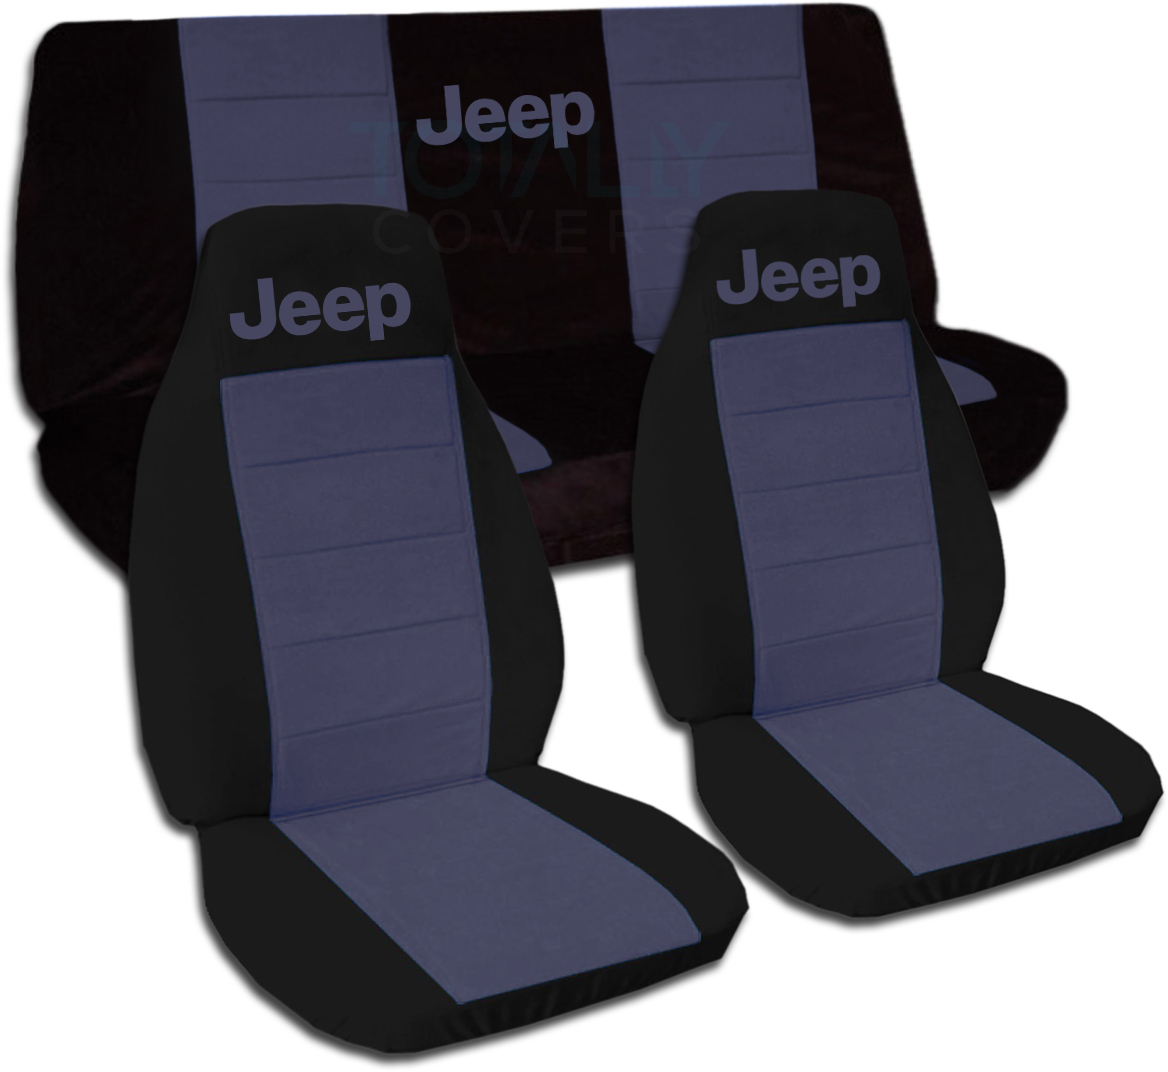 jeep seat covers bing images. Black Bedroom Furniture Sets. Home Design Ideas